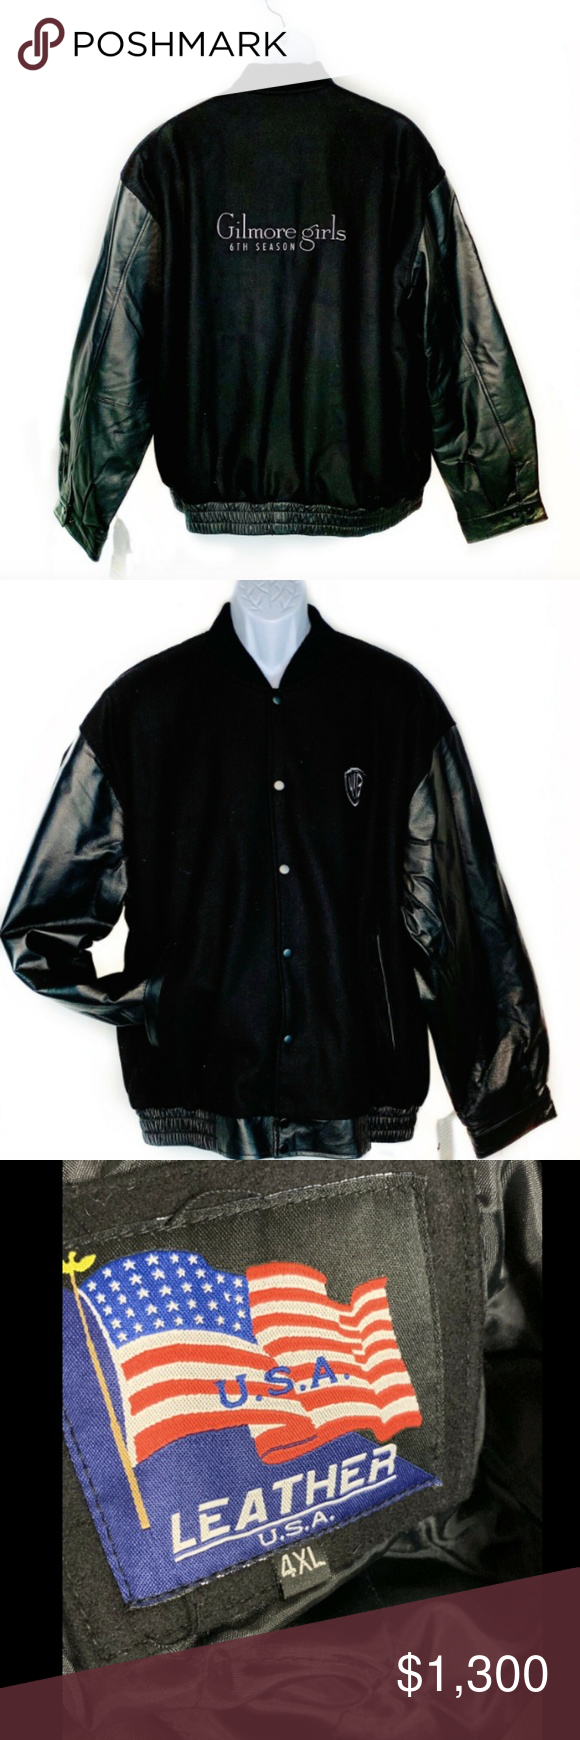 GILMORE GIRLS Cast & Crew Gift Varsity Jacket Lthr Very rare Gilmore Girls leather and wool varsity jacket with quilted interior. It was given as a gift to the cast and production crew during the 6th season so this is an incredibly special find. Never worn. Men's 4x. Gilmore Girls Jackets & Coats Bomber & Varsity #varsityjacketoutfit